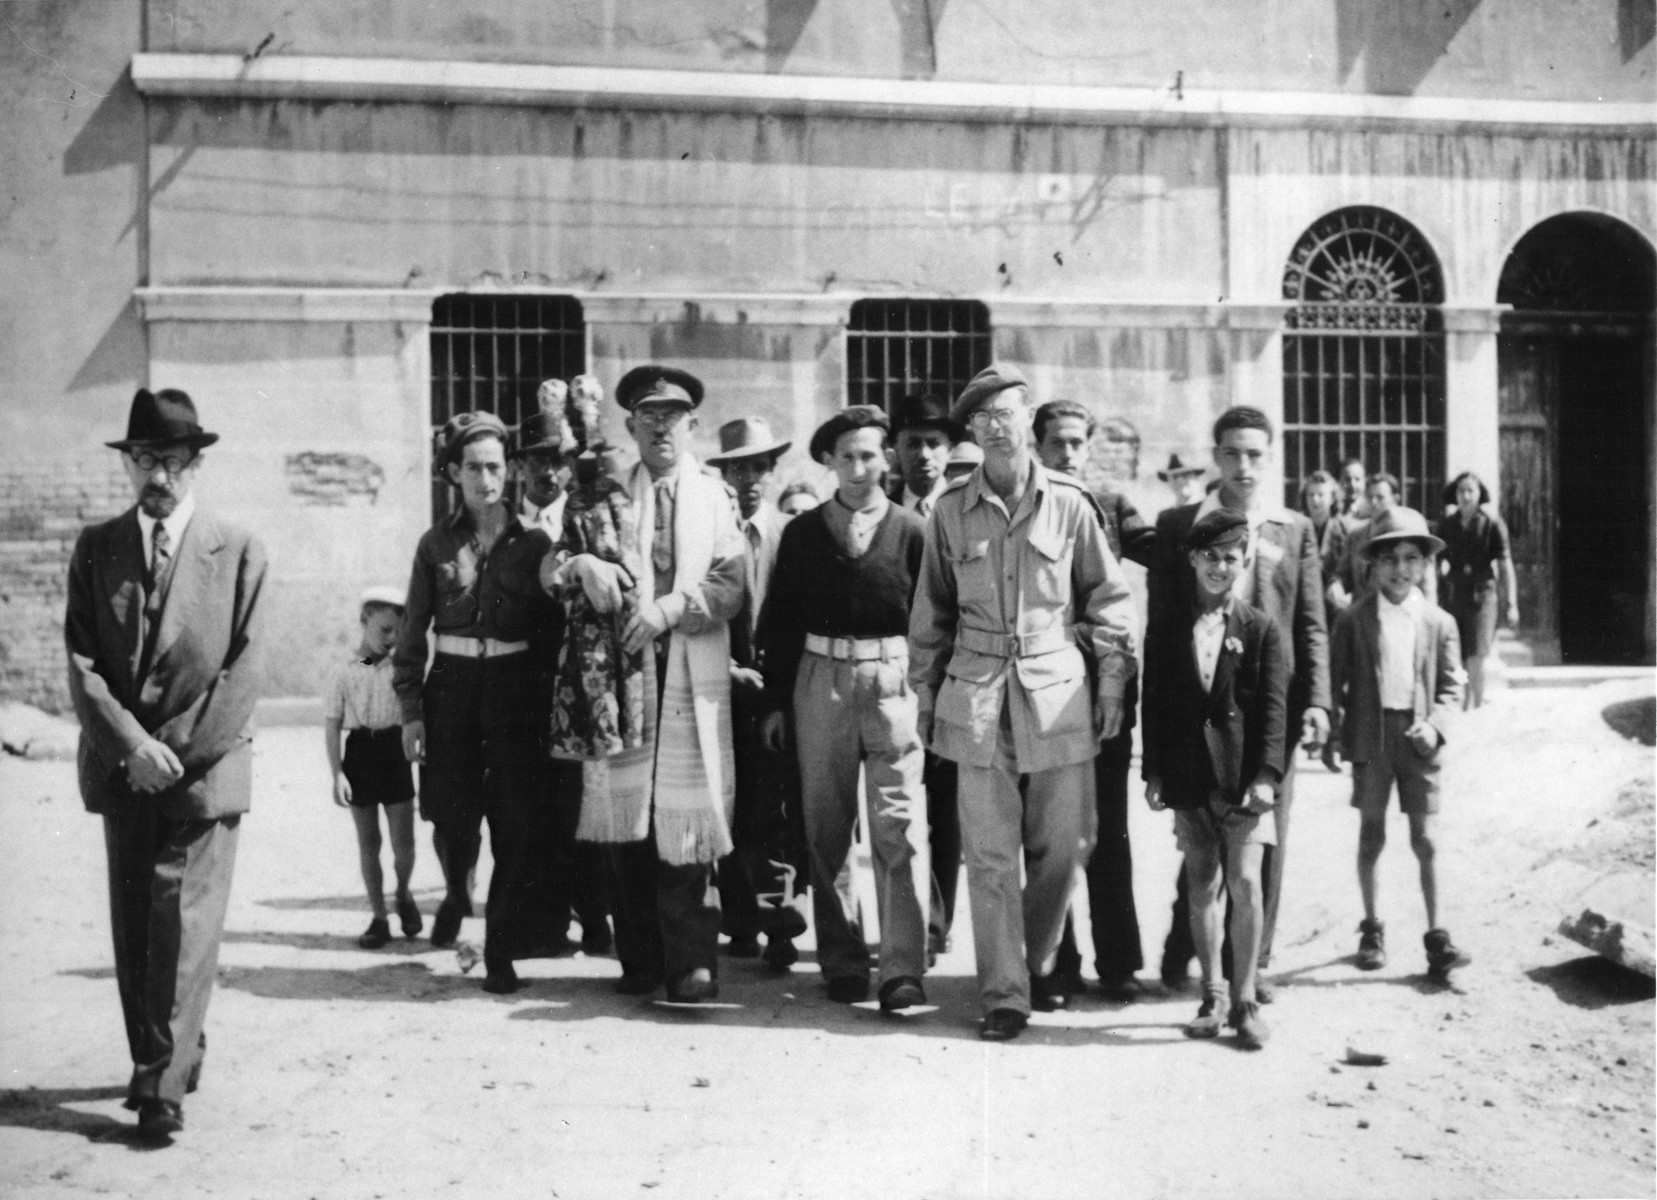 Rabbi Lifschitz, in the company of Jewish Brigade soldiers, carries a Torah scroll that has been rescued, to the Sephardic synagogue in the Venice ghetto.  Also pictured is Immanuel M. Ascarelli (second from the right) wearing a Jewish Birgade uniform..